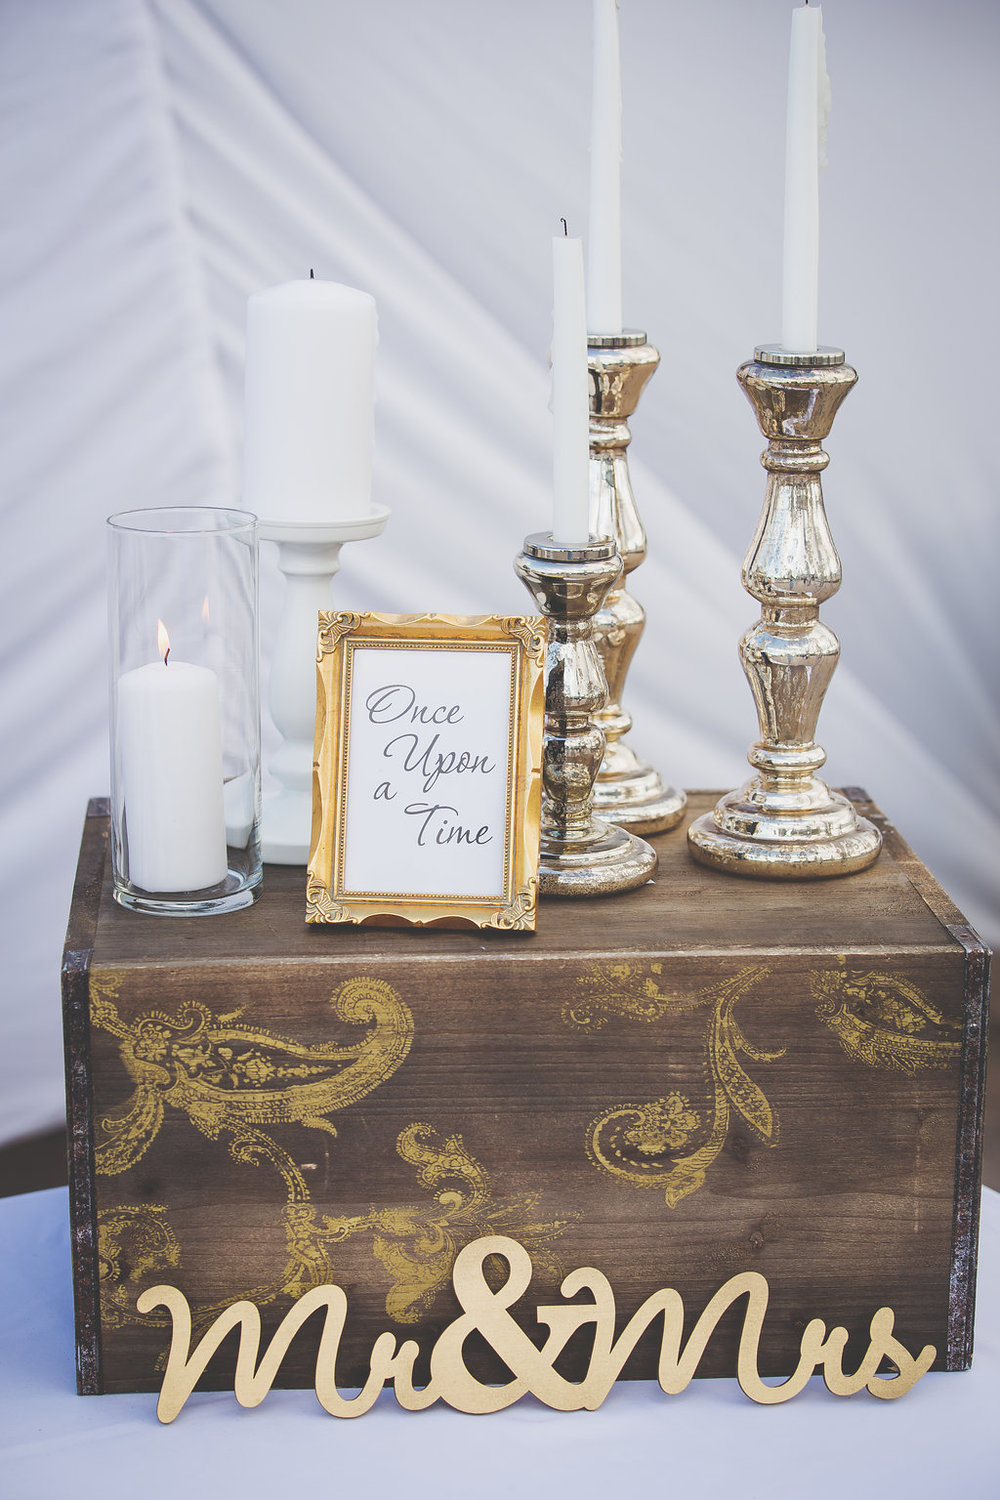 Wedding reception decor, candles, Mr & Mrs sign.